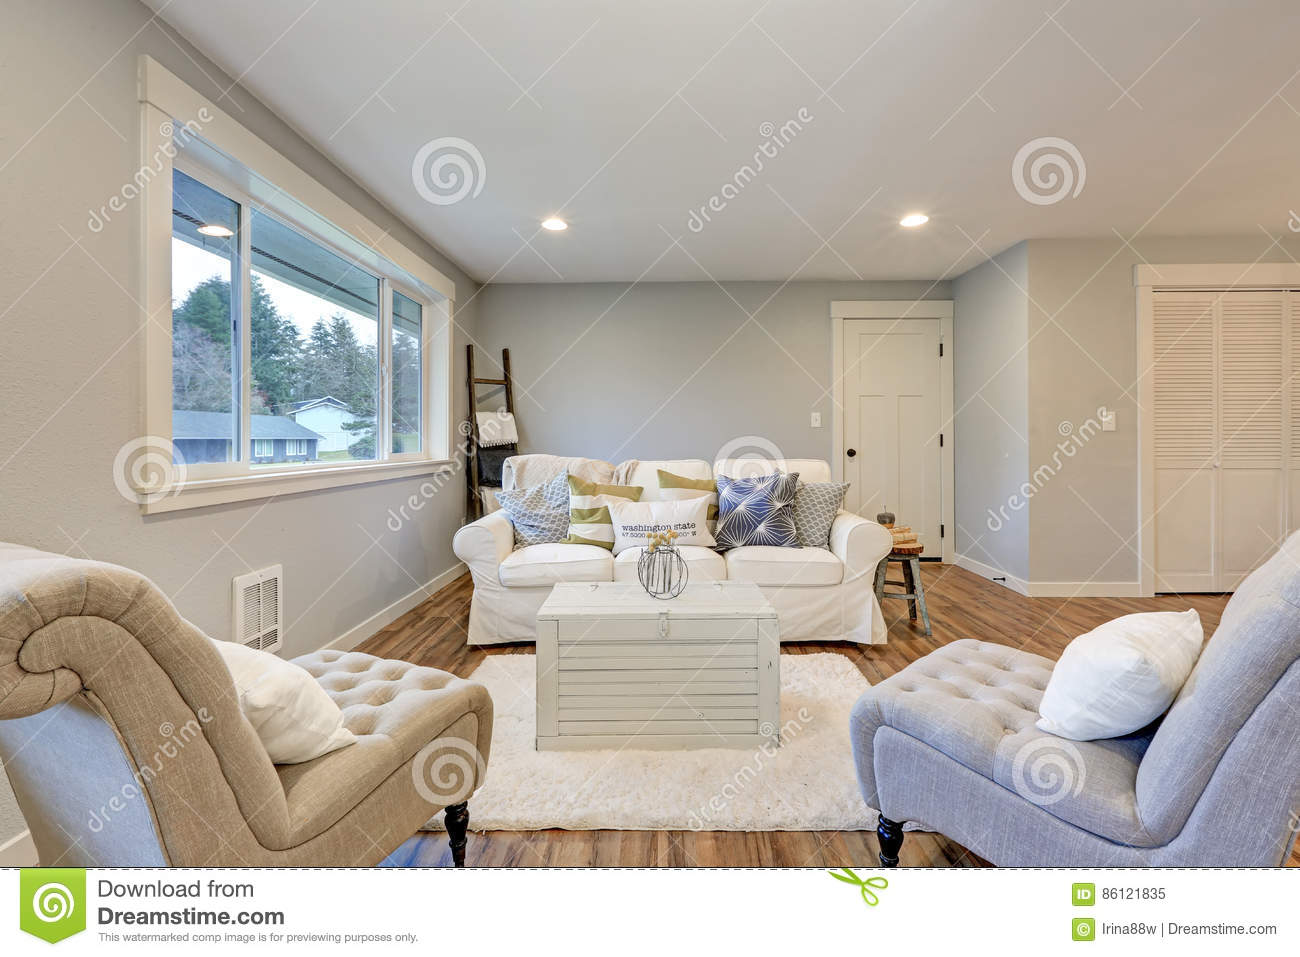 Grey White And Blue Living Room Cozy Living Room Space With Soft Blue Grey Walls Stock Image